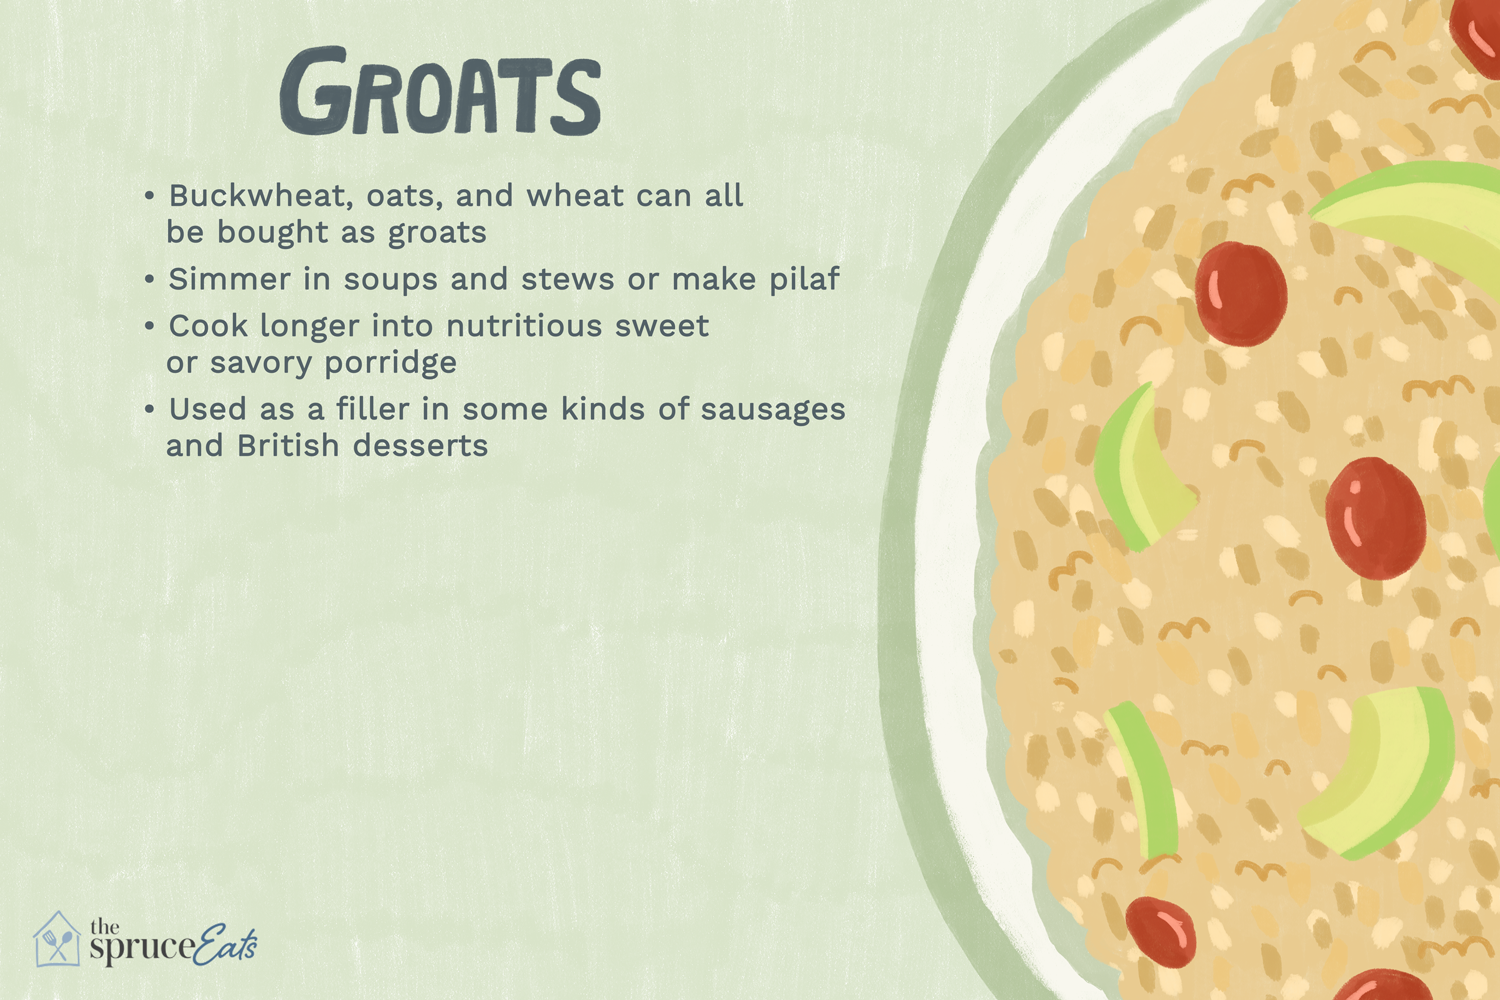 what are groats